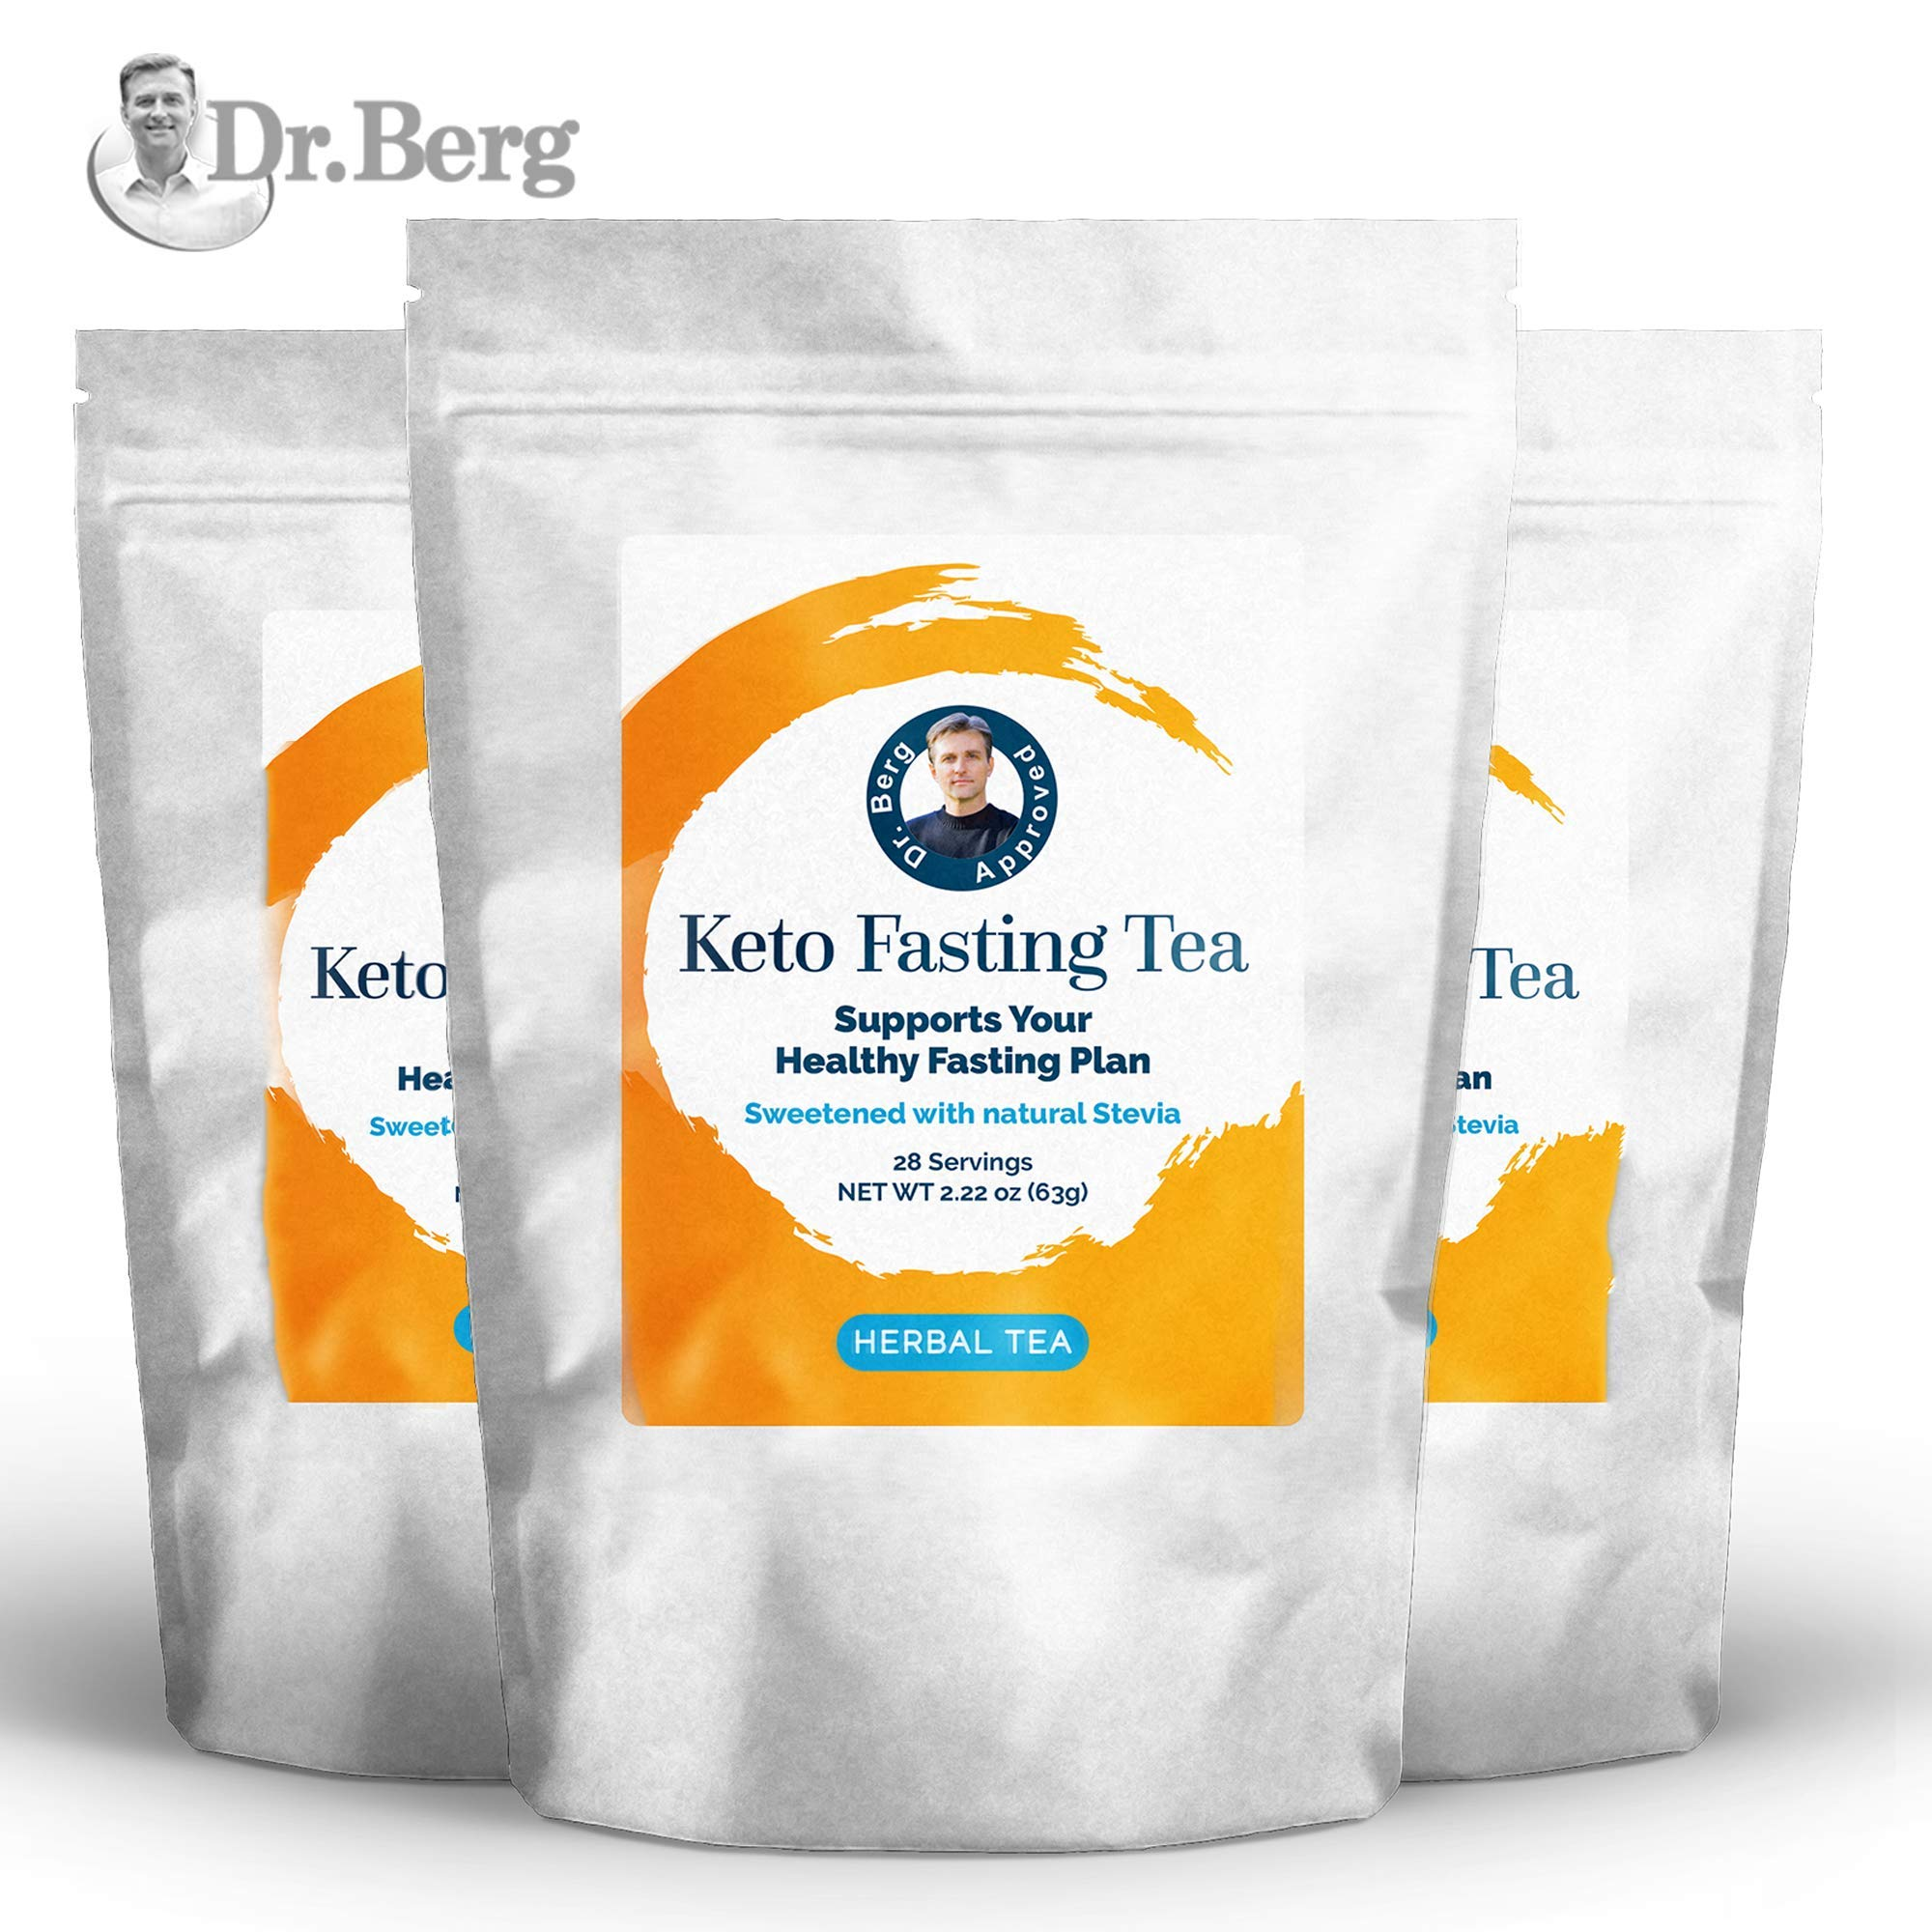 Dr. Berg's Keto Fasting Tea (Sweetened) Caffeine-Free - an Appetite Suppressant Green Herbal Tea Drink to Help Reduce Hunger for Weight Loss - Dietary Supplement (3 Pack)